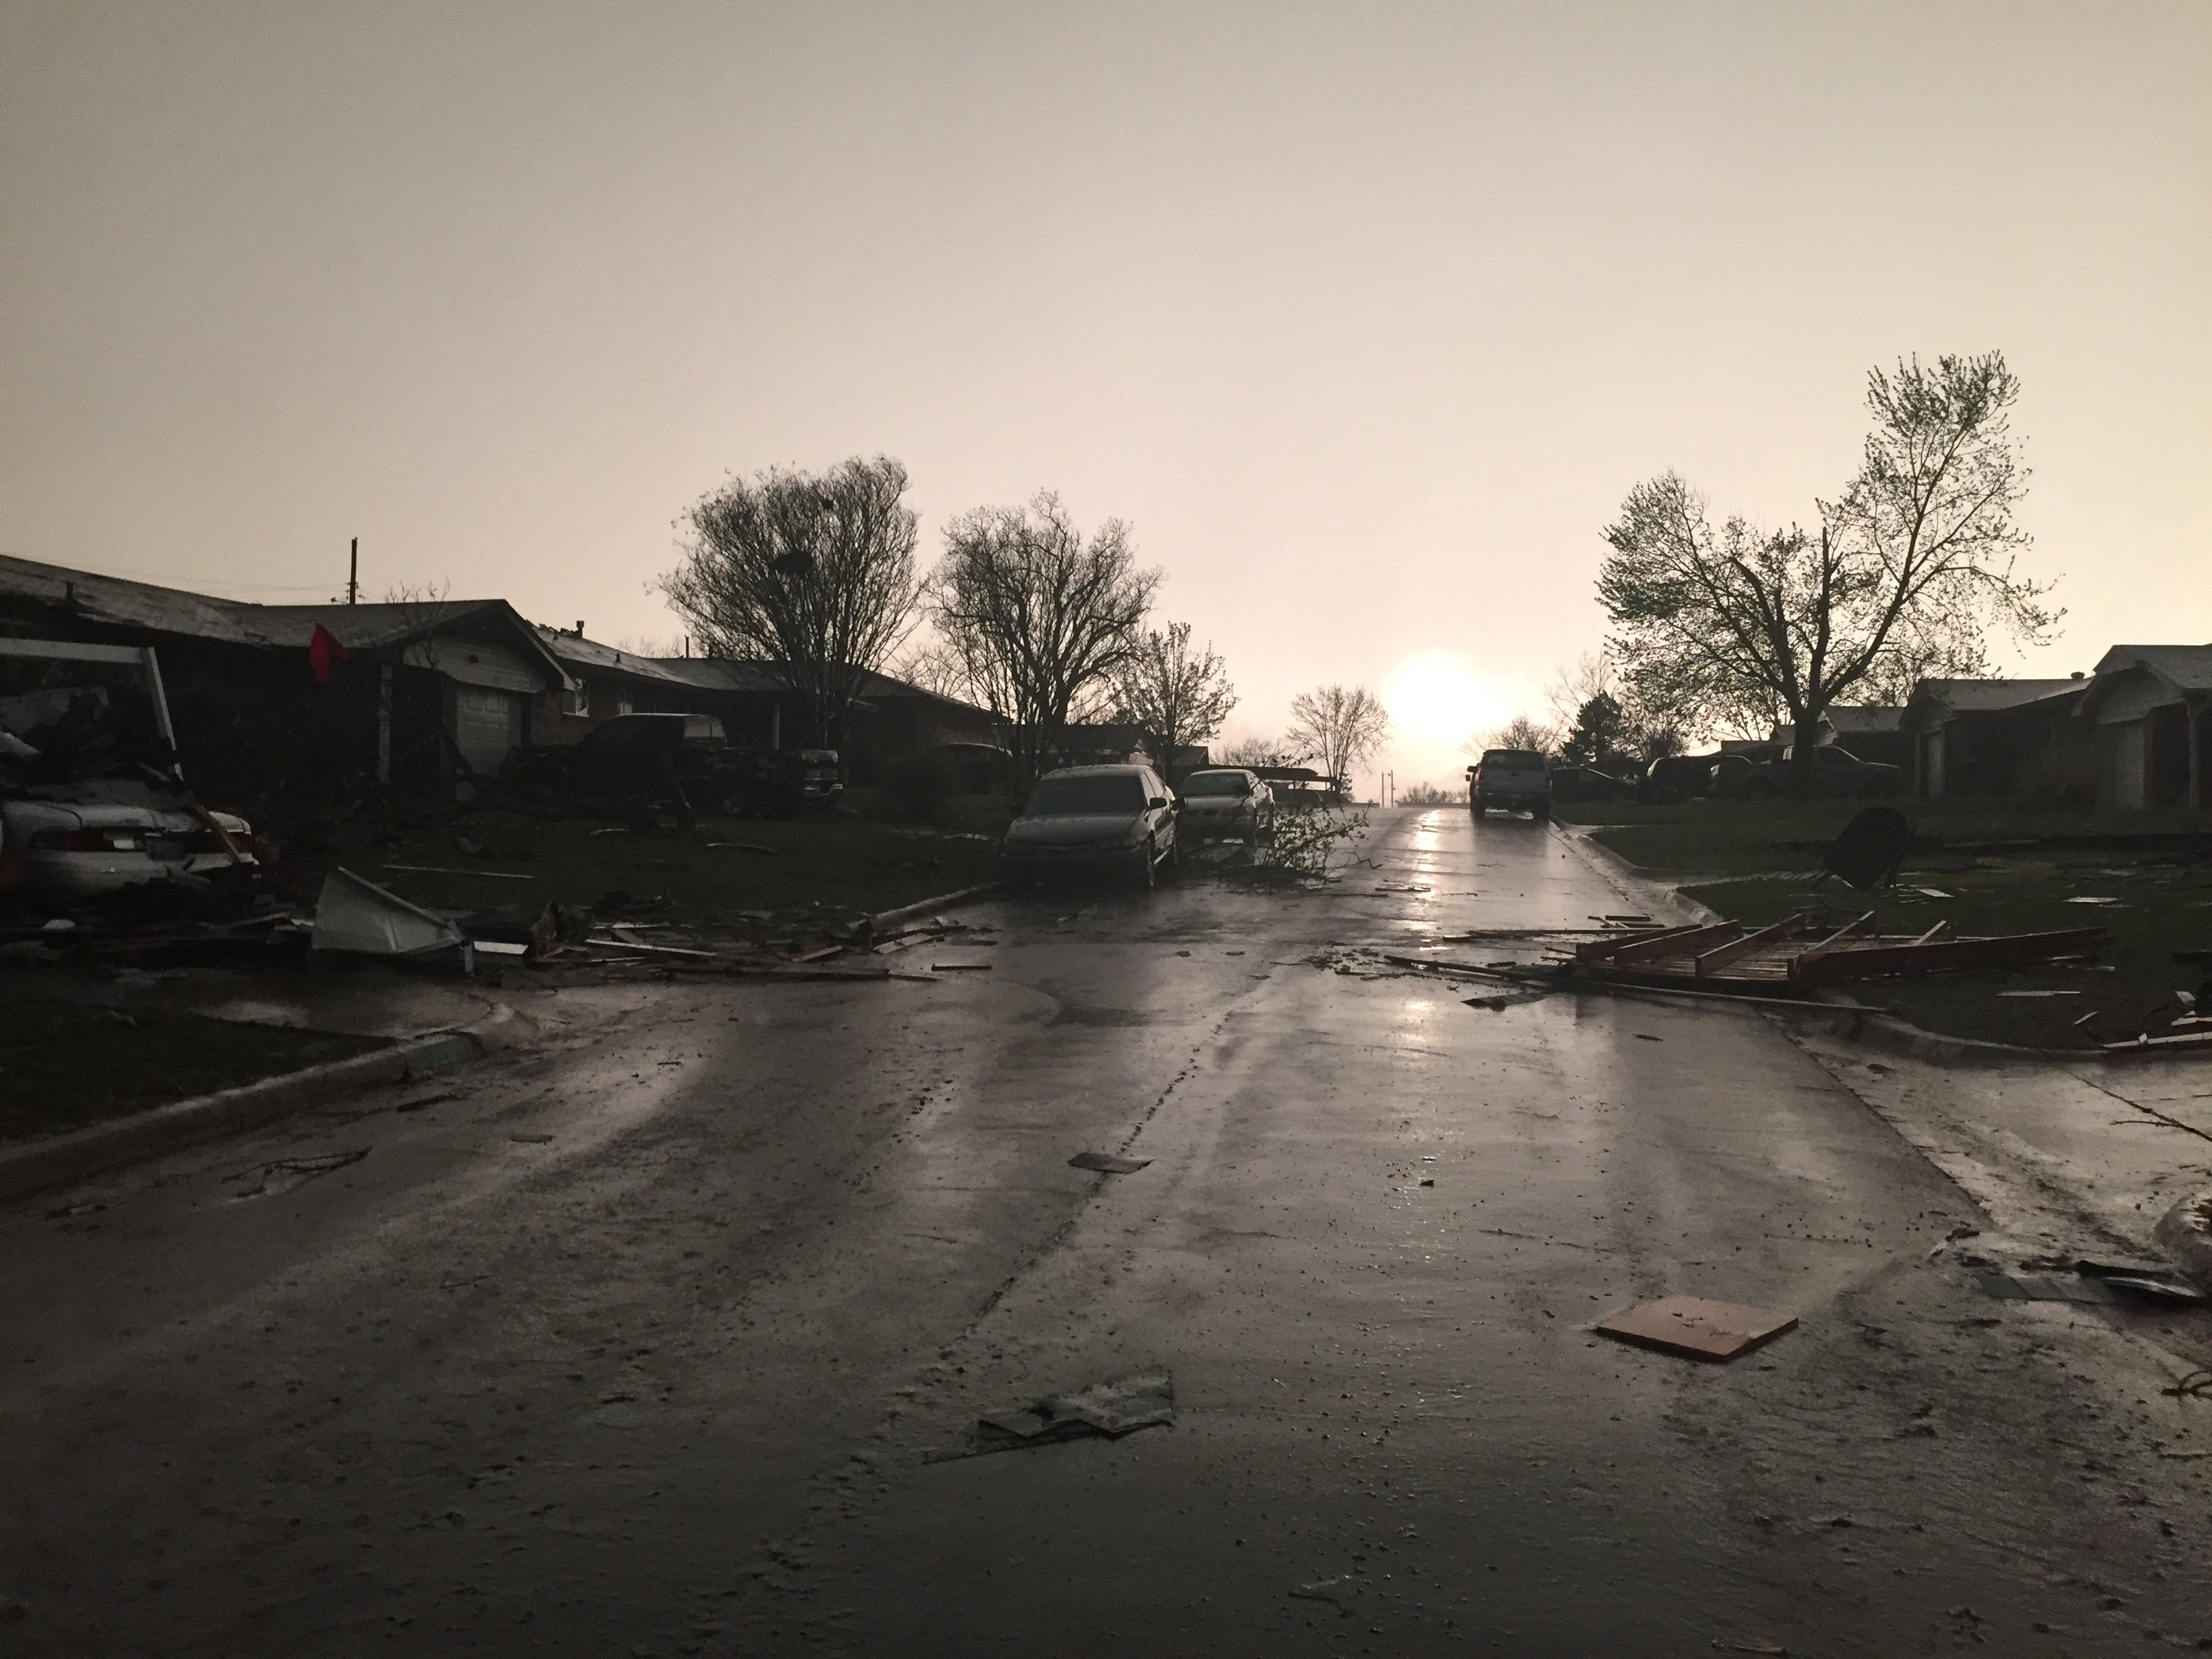 Debris and downed trees litter the streets after a tornado ripped through Moore, Okla. on March 25, 2015.